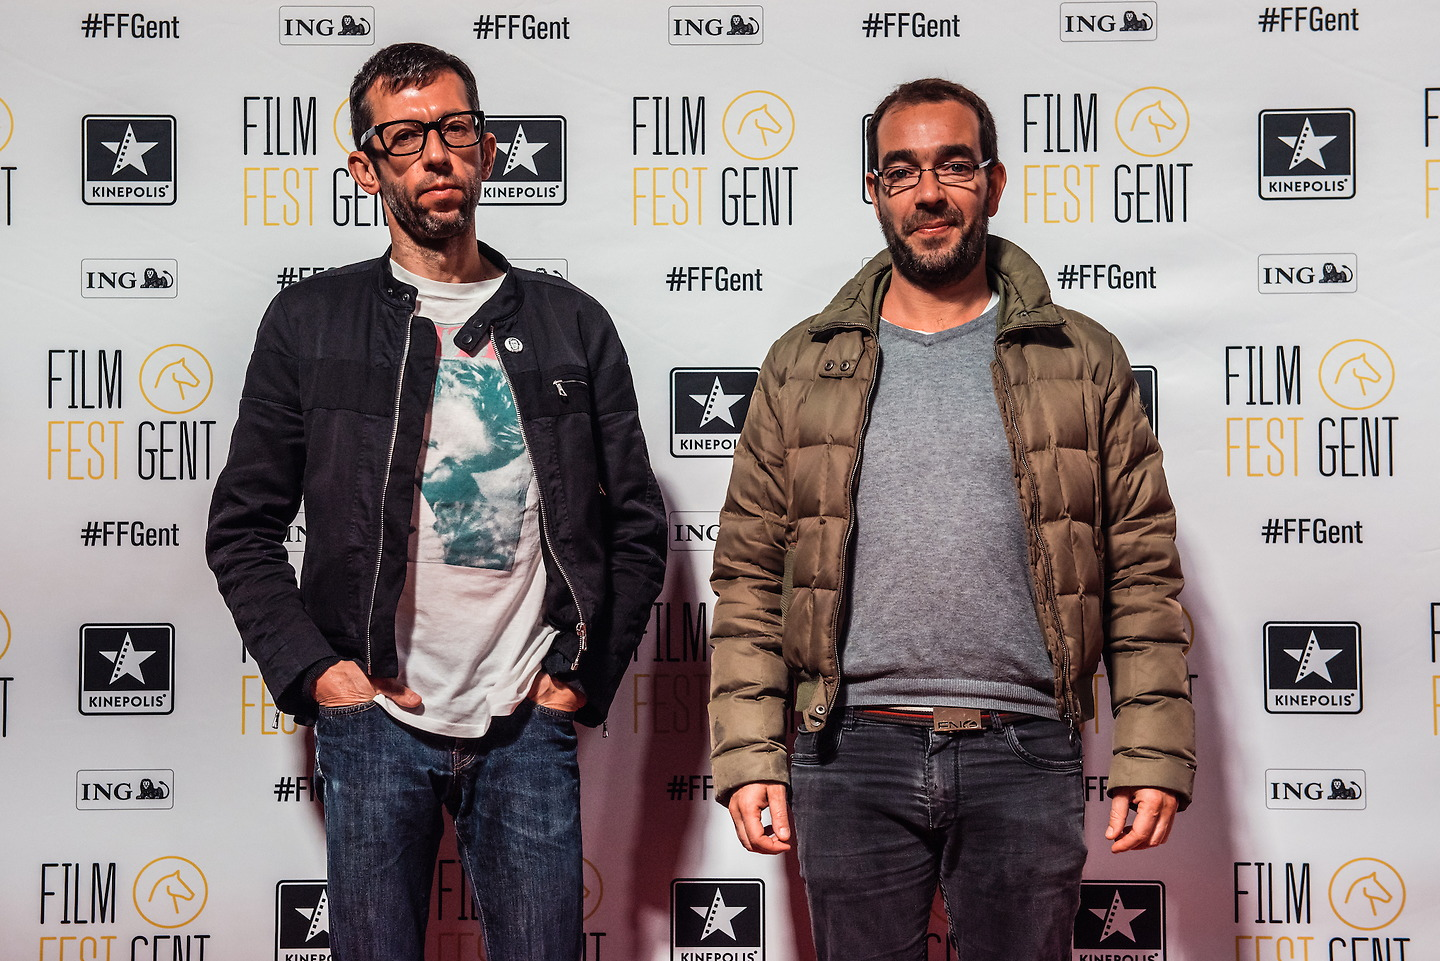 Film Fest Gent - The Ornithologist